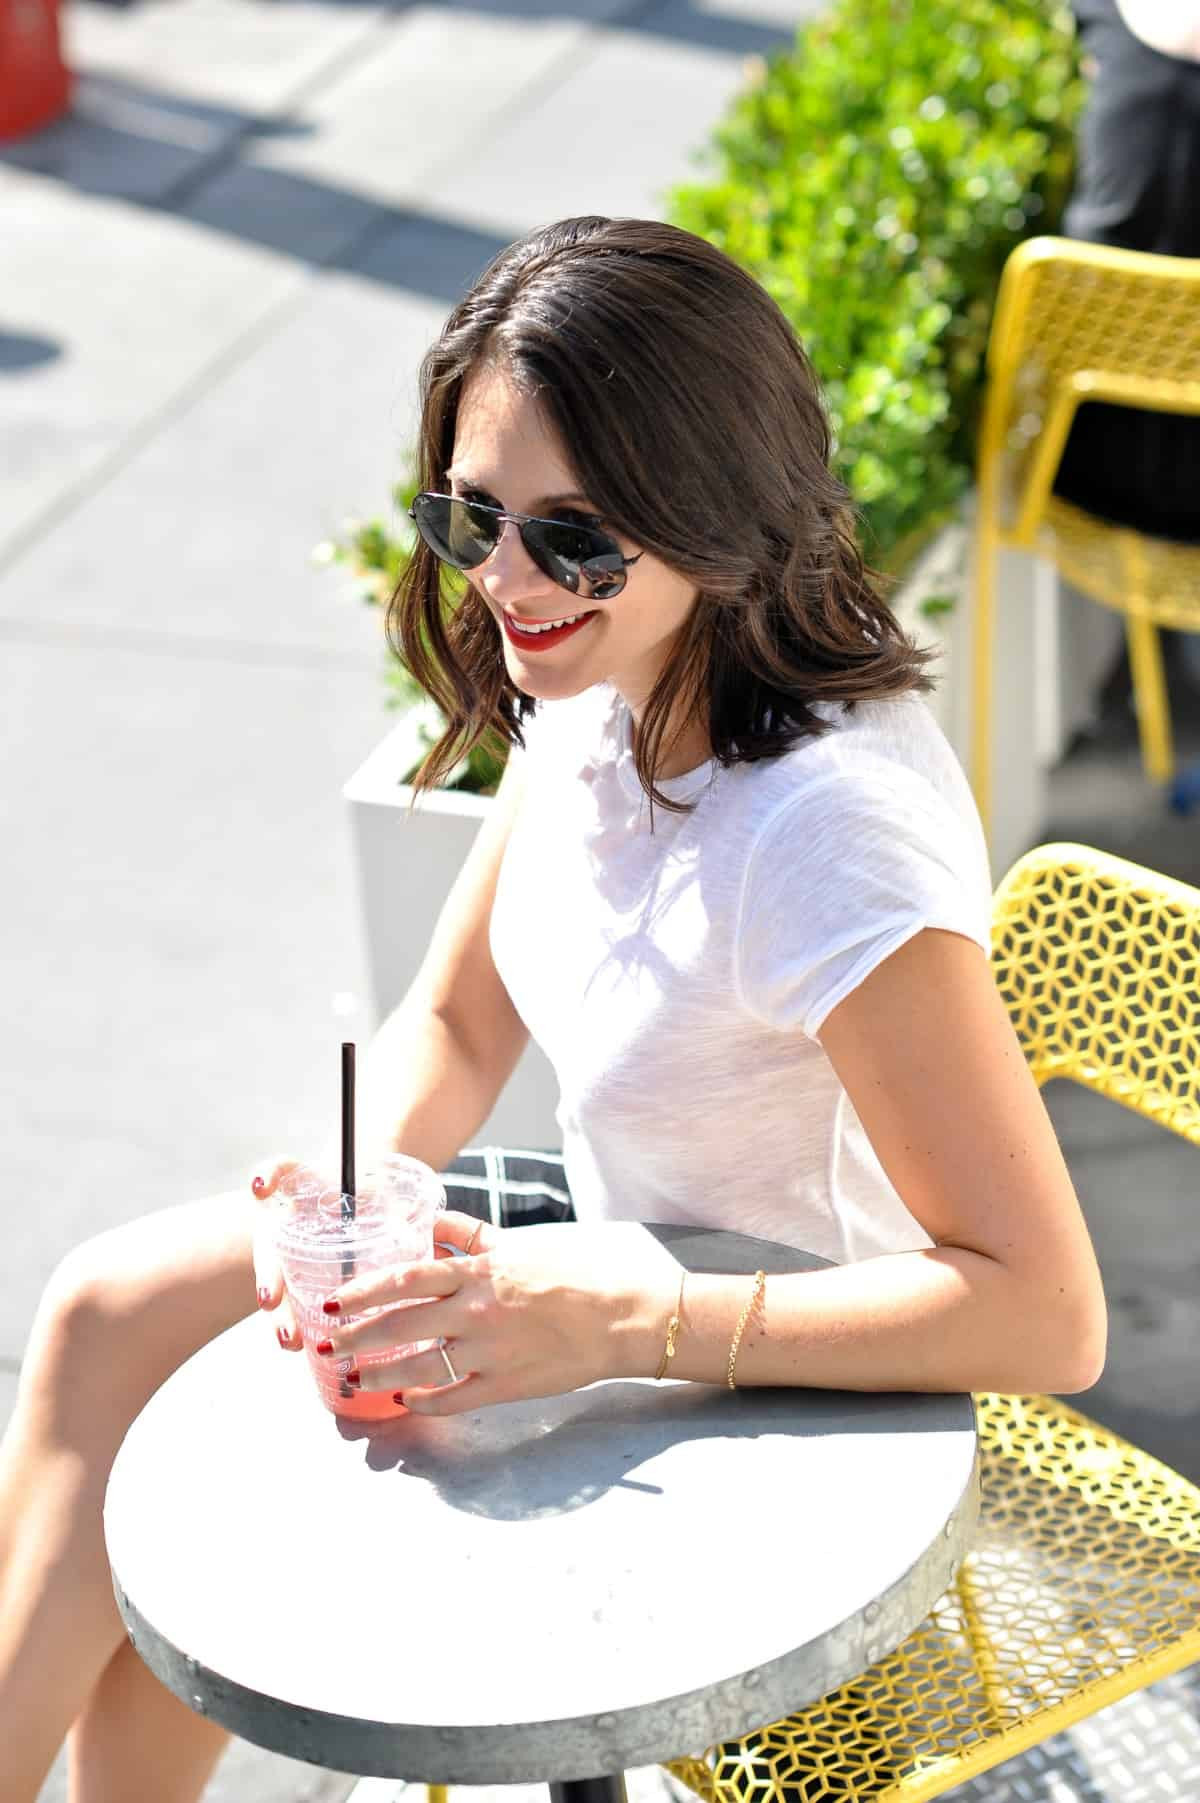 Madewell Windowpane Skirt - Black and white outfit ideas - NYFW, Street Style, Adidas, How to style Adidas - My Style Vita @mystylevita